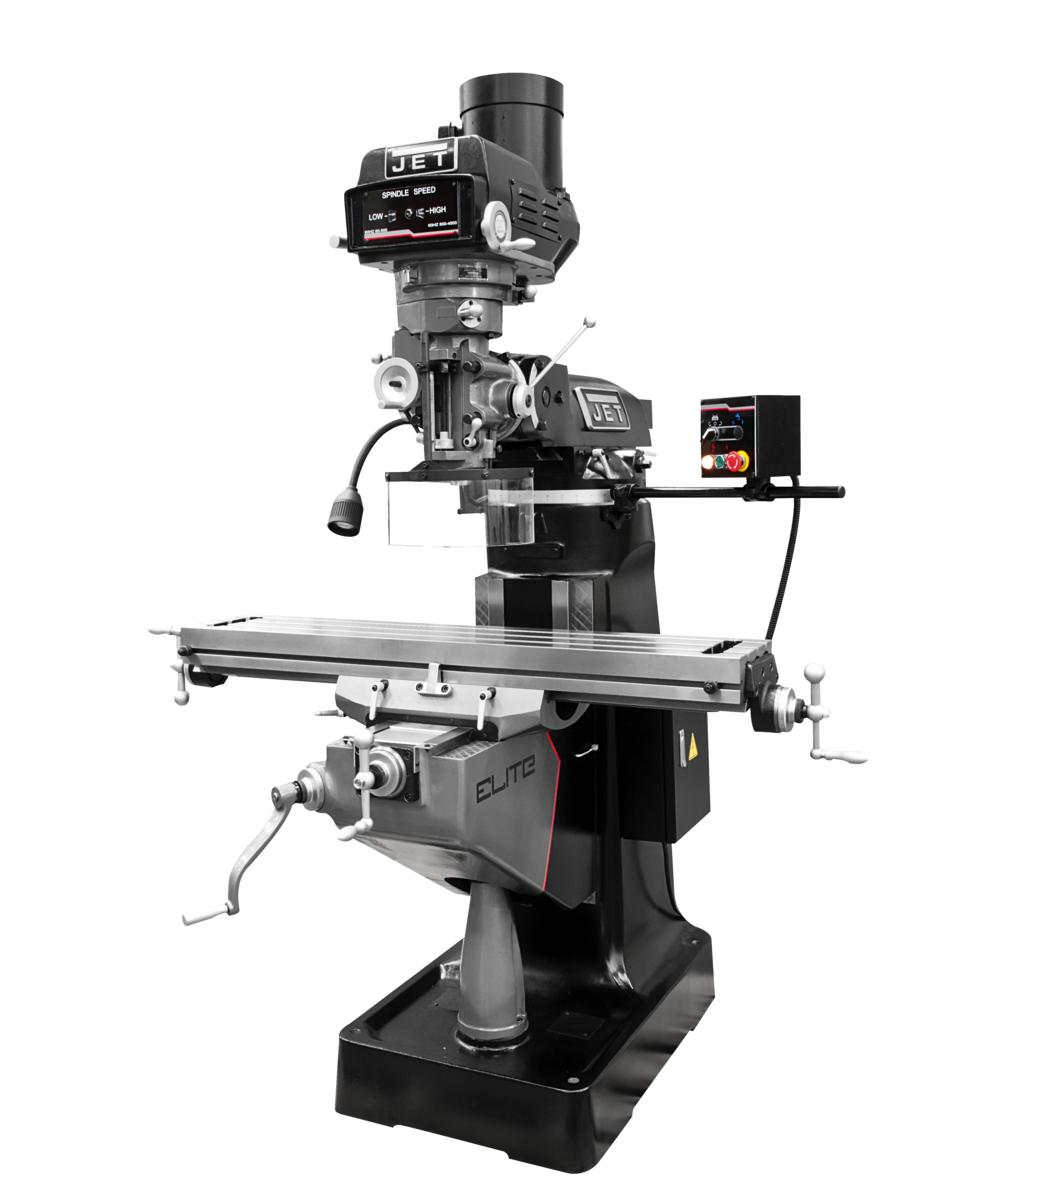 ETM-949 Mill with X, Y-Axis JET Powerfeeds